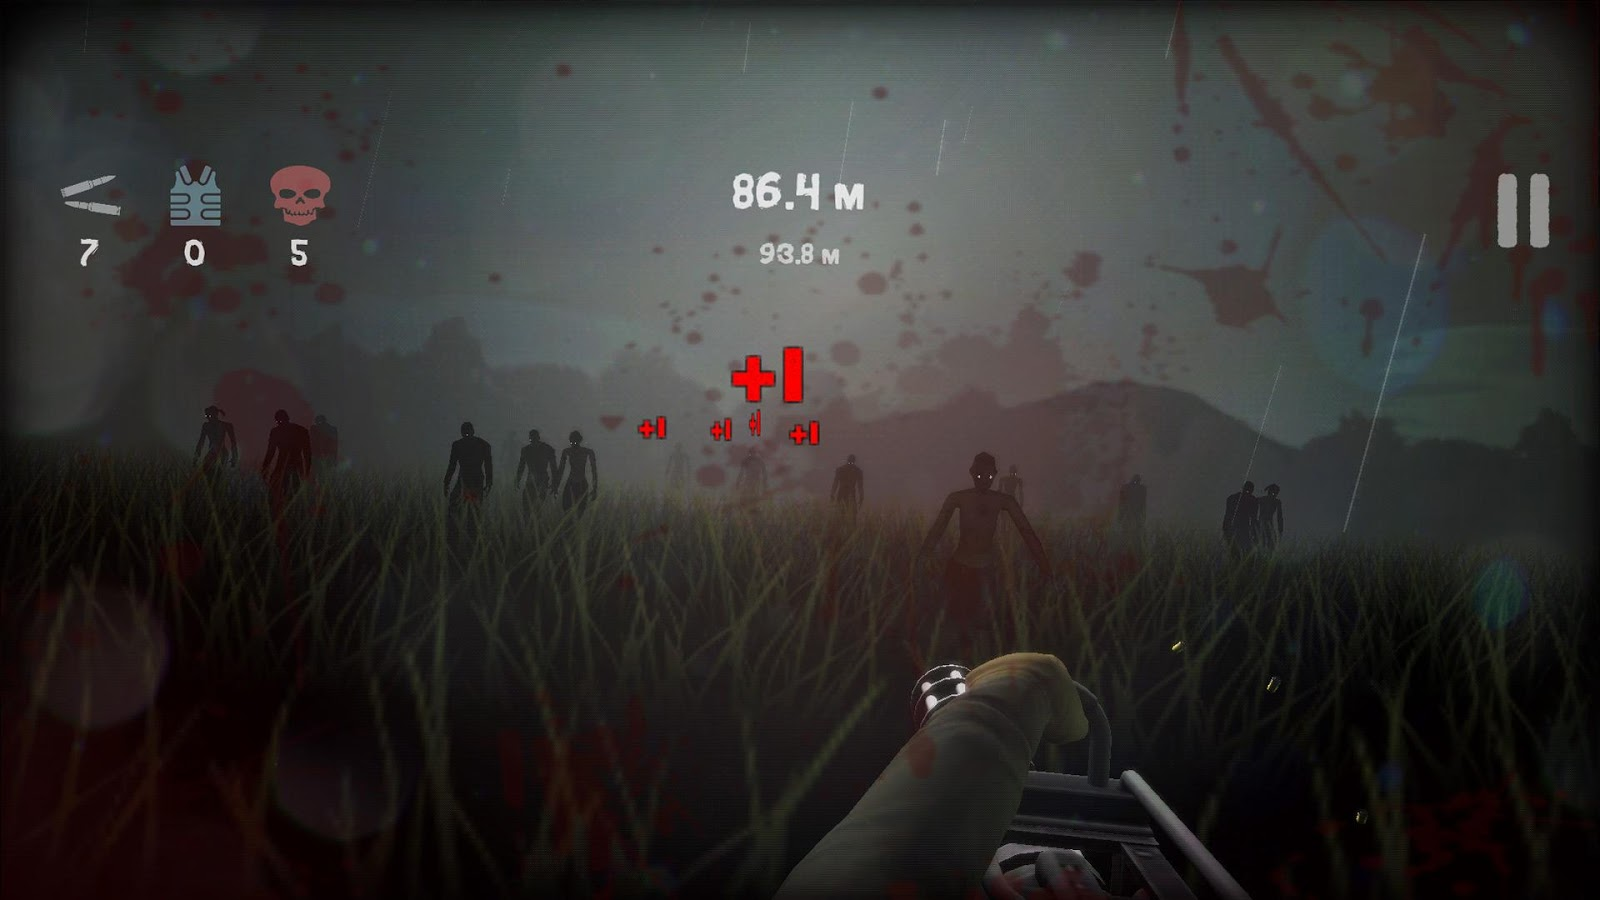 D.E.A.D. Screenshot 3